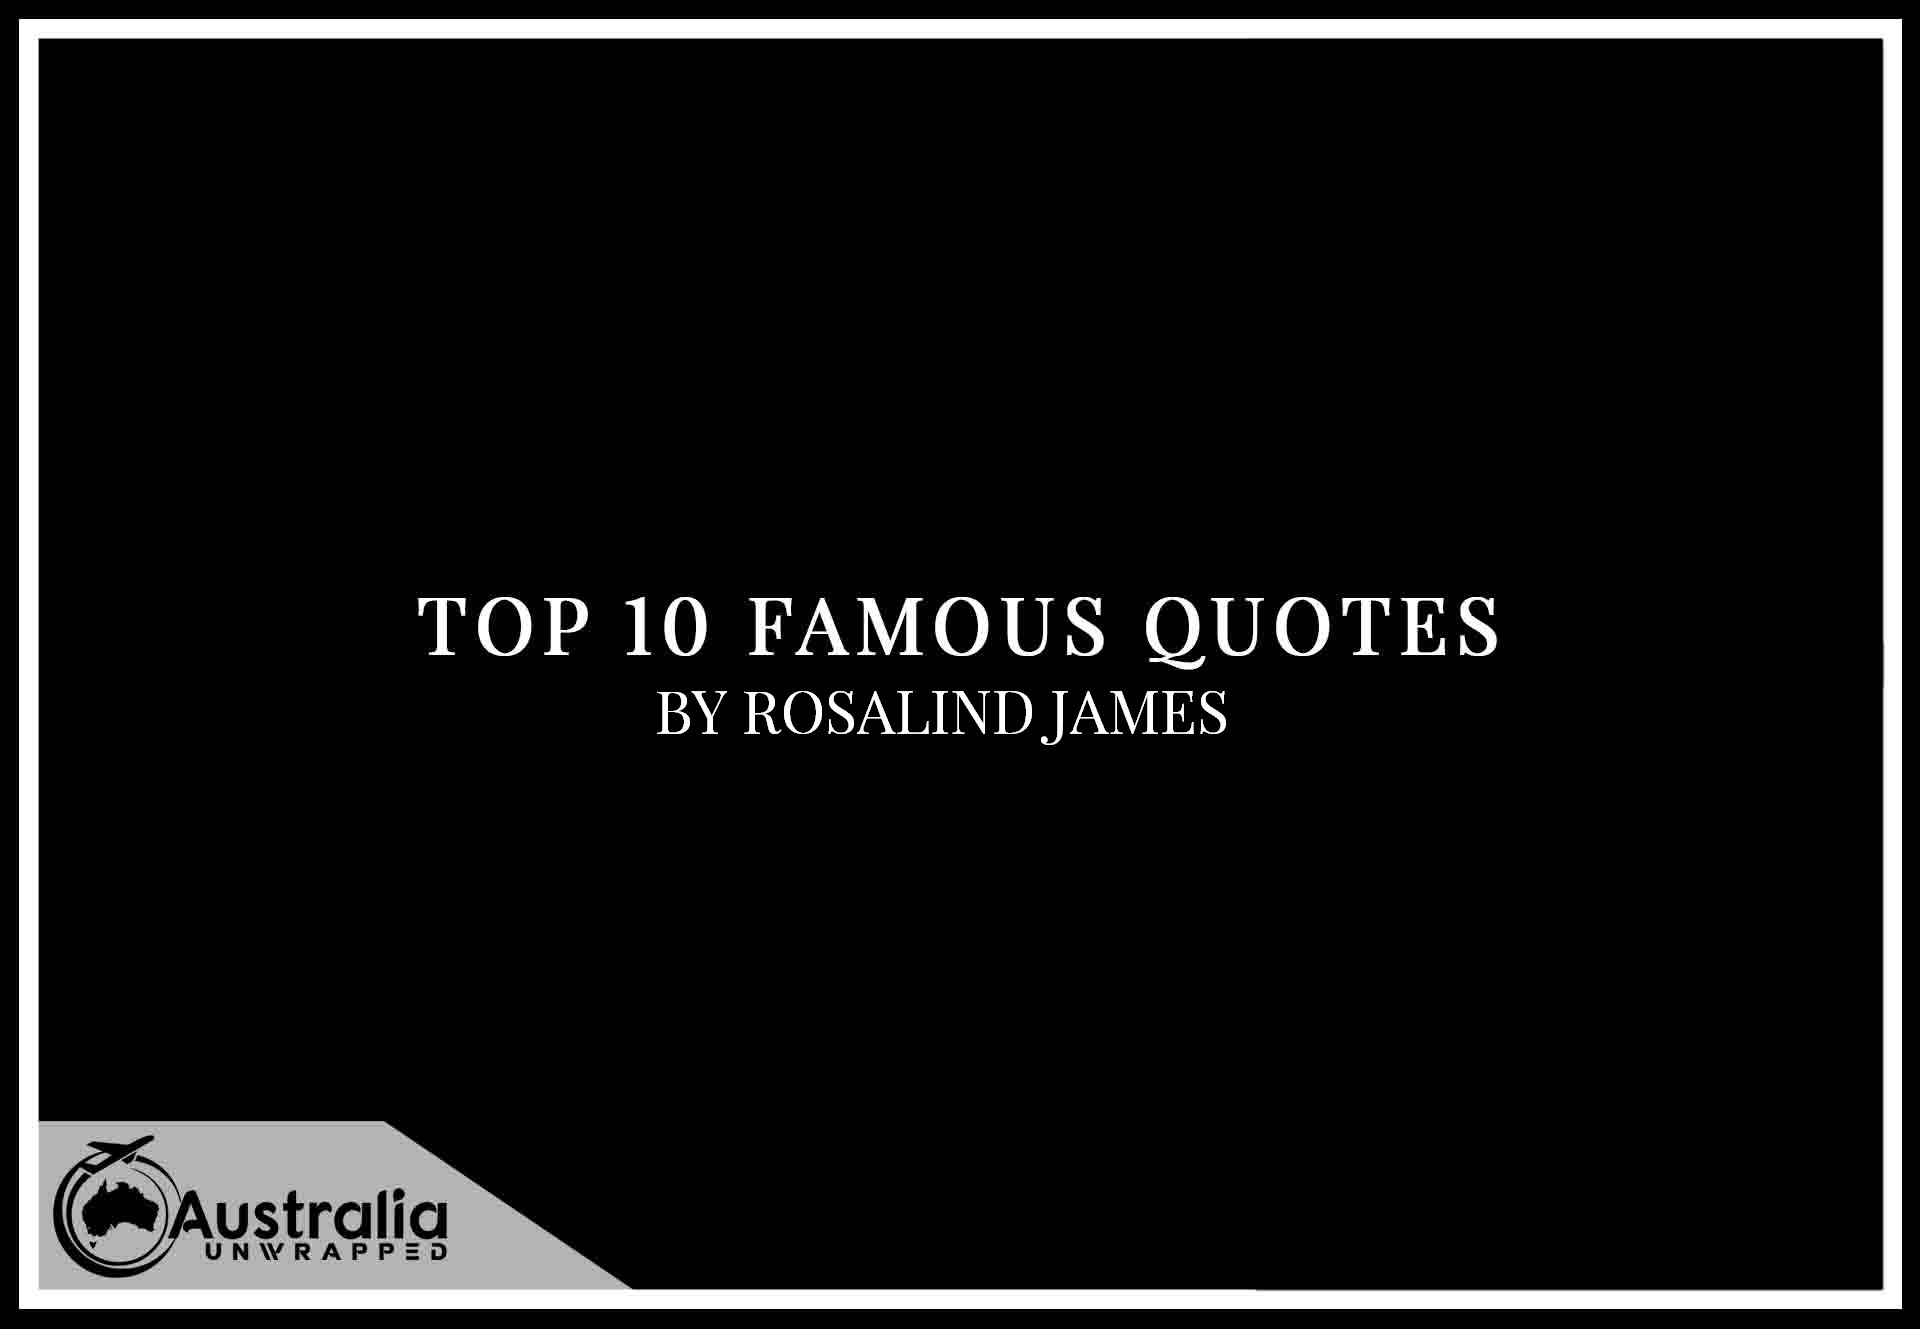 Top 10 Famous Quotes by Author Rosalind James